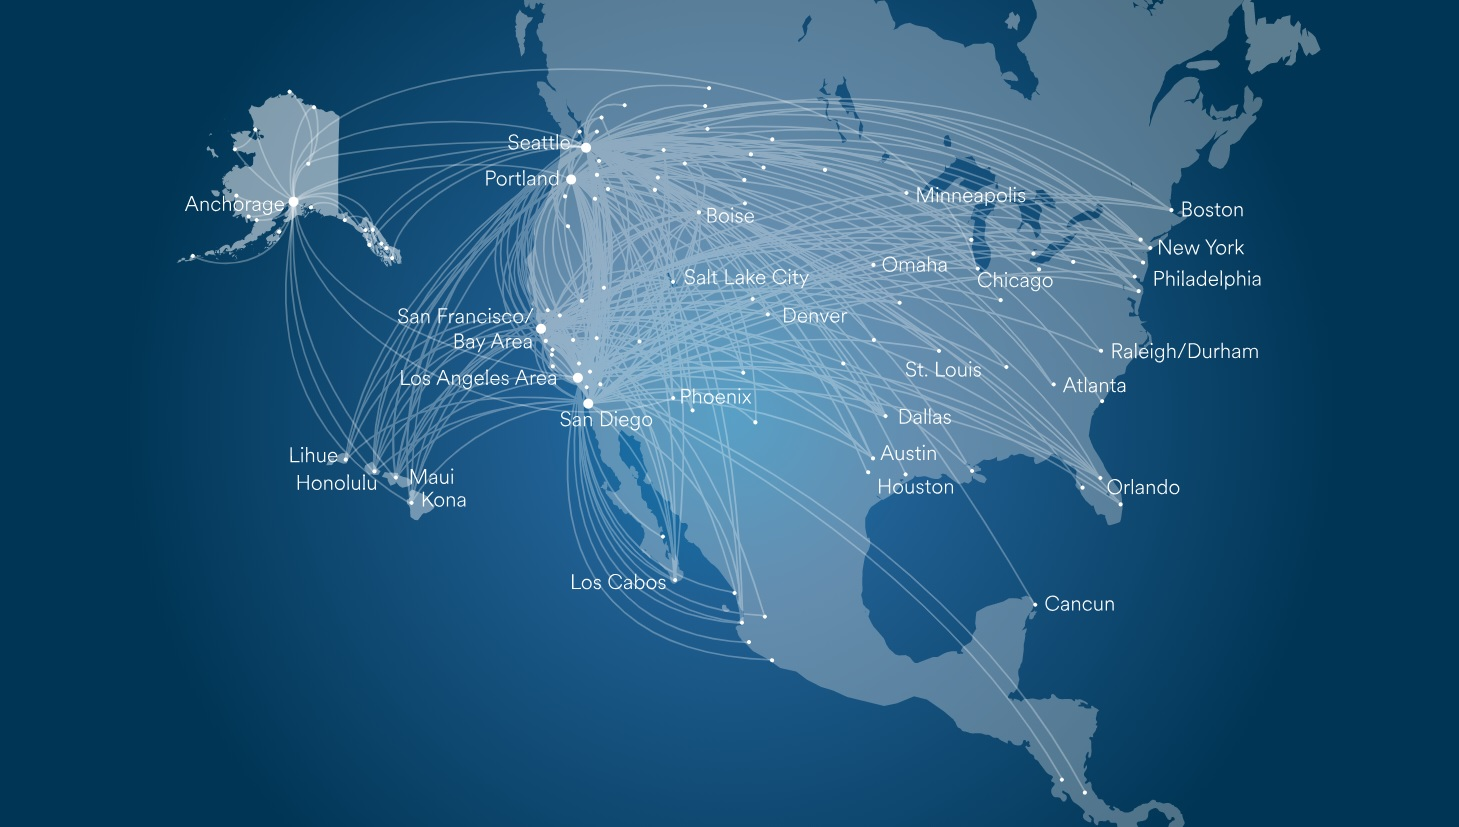 Alaska Airlines | Getting Away With Points on hainan airlines route map, vanguard airlines route map, southwest airlines route map, sun country route map, united airlines route map, qantas airlines route map, frontier airlines route map, british airways route map, american airlines route map, hawaiian airlines route map, airtran route map, air india route map, skywest airlines route map, delta route map, air berlin route map, jetblue route map, iberia route map, alaska airlines service map, allegiant airlines route map,